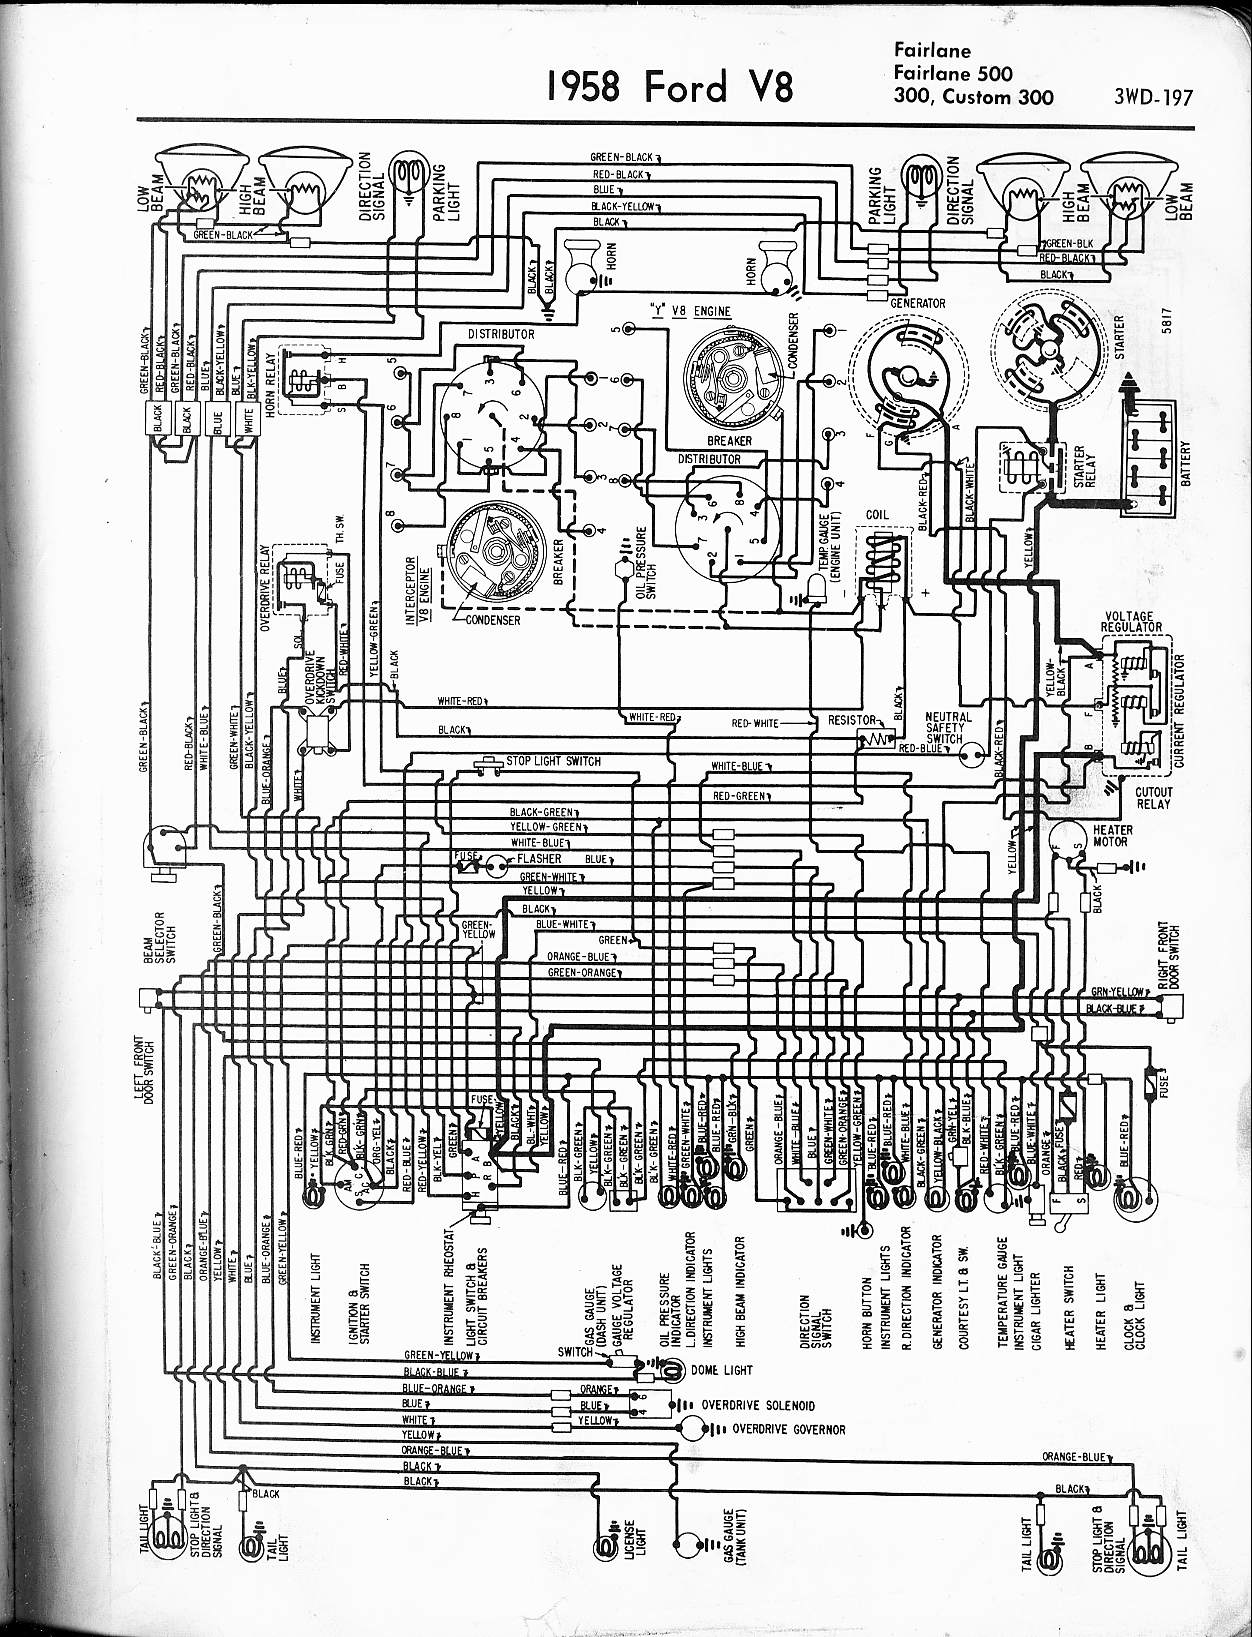 MWire5765 197 57 65 ford wiring diagrams ford wiring schematics at readyjetset.co